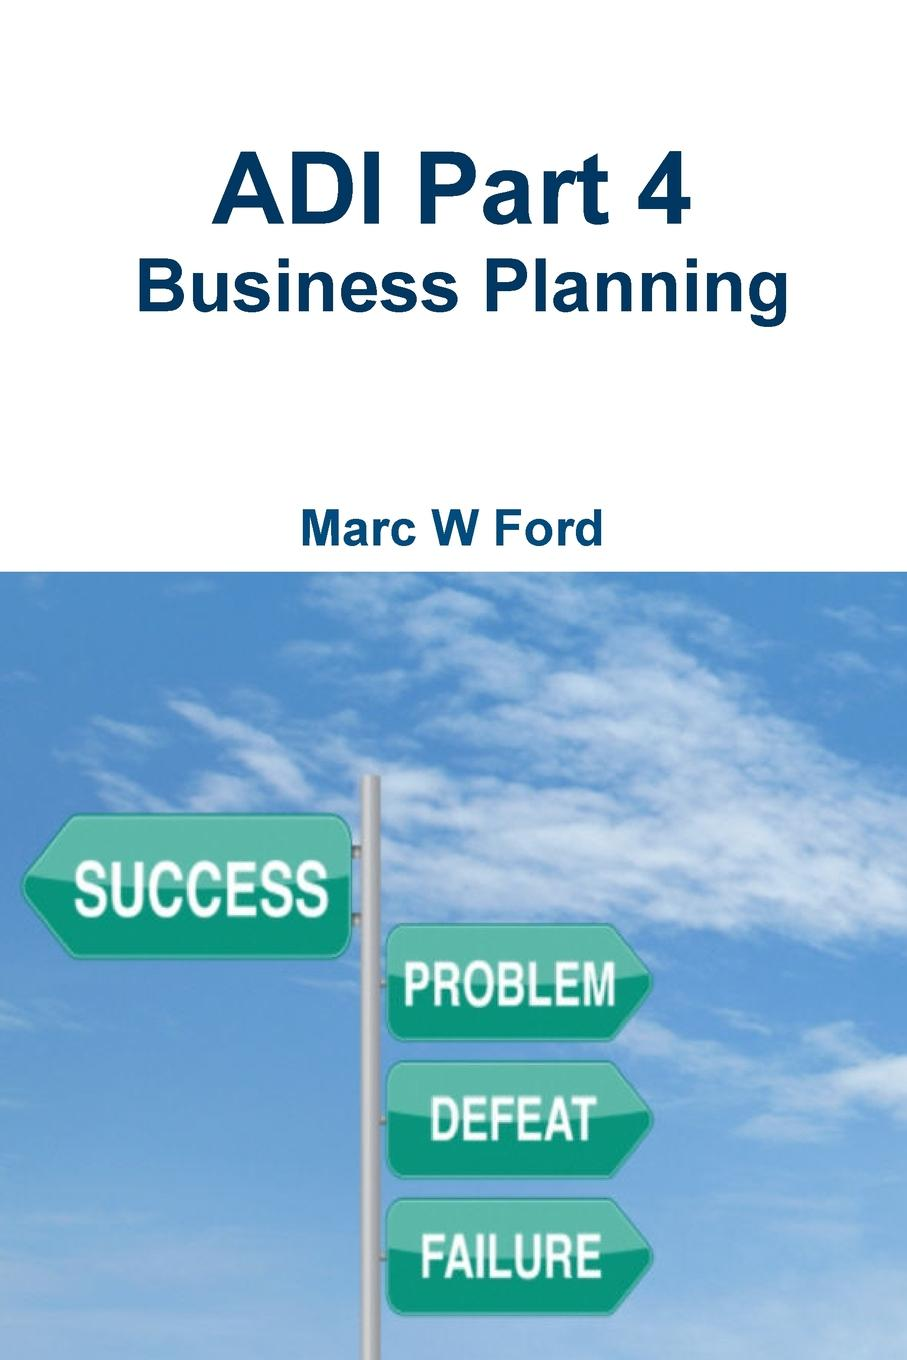 Adi Part 4 - Business Planning Passing the ADI Part 1,2 and 3 qualification exams is just the start...